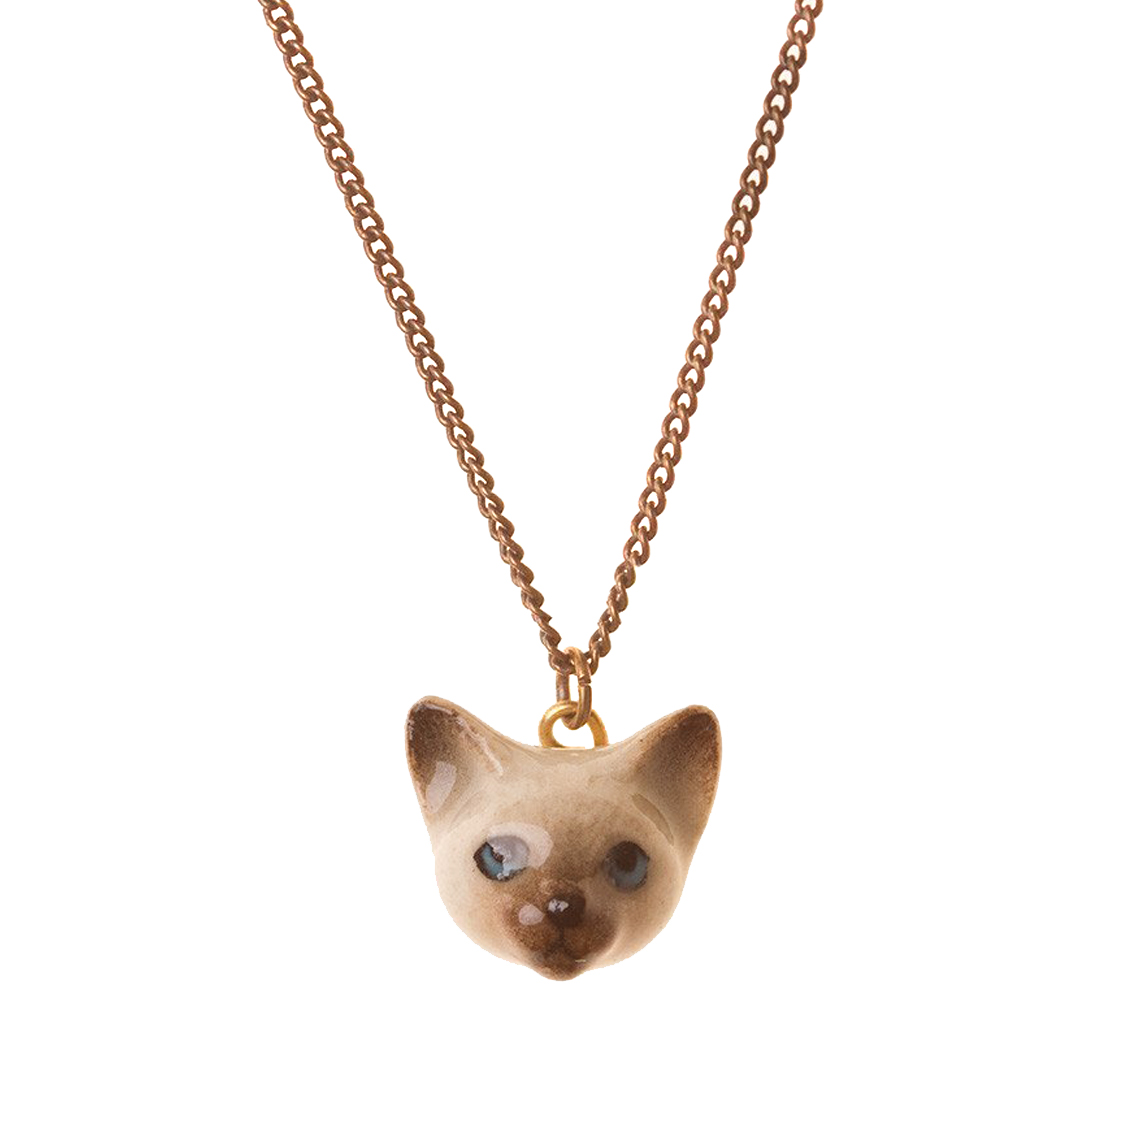 collier porcelaine and mary necklace petite tete de chaton siamois - cassisroyal.com